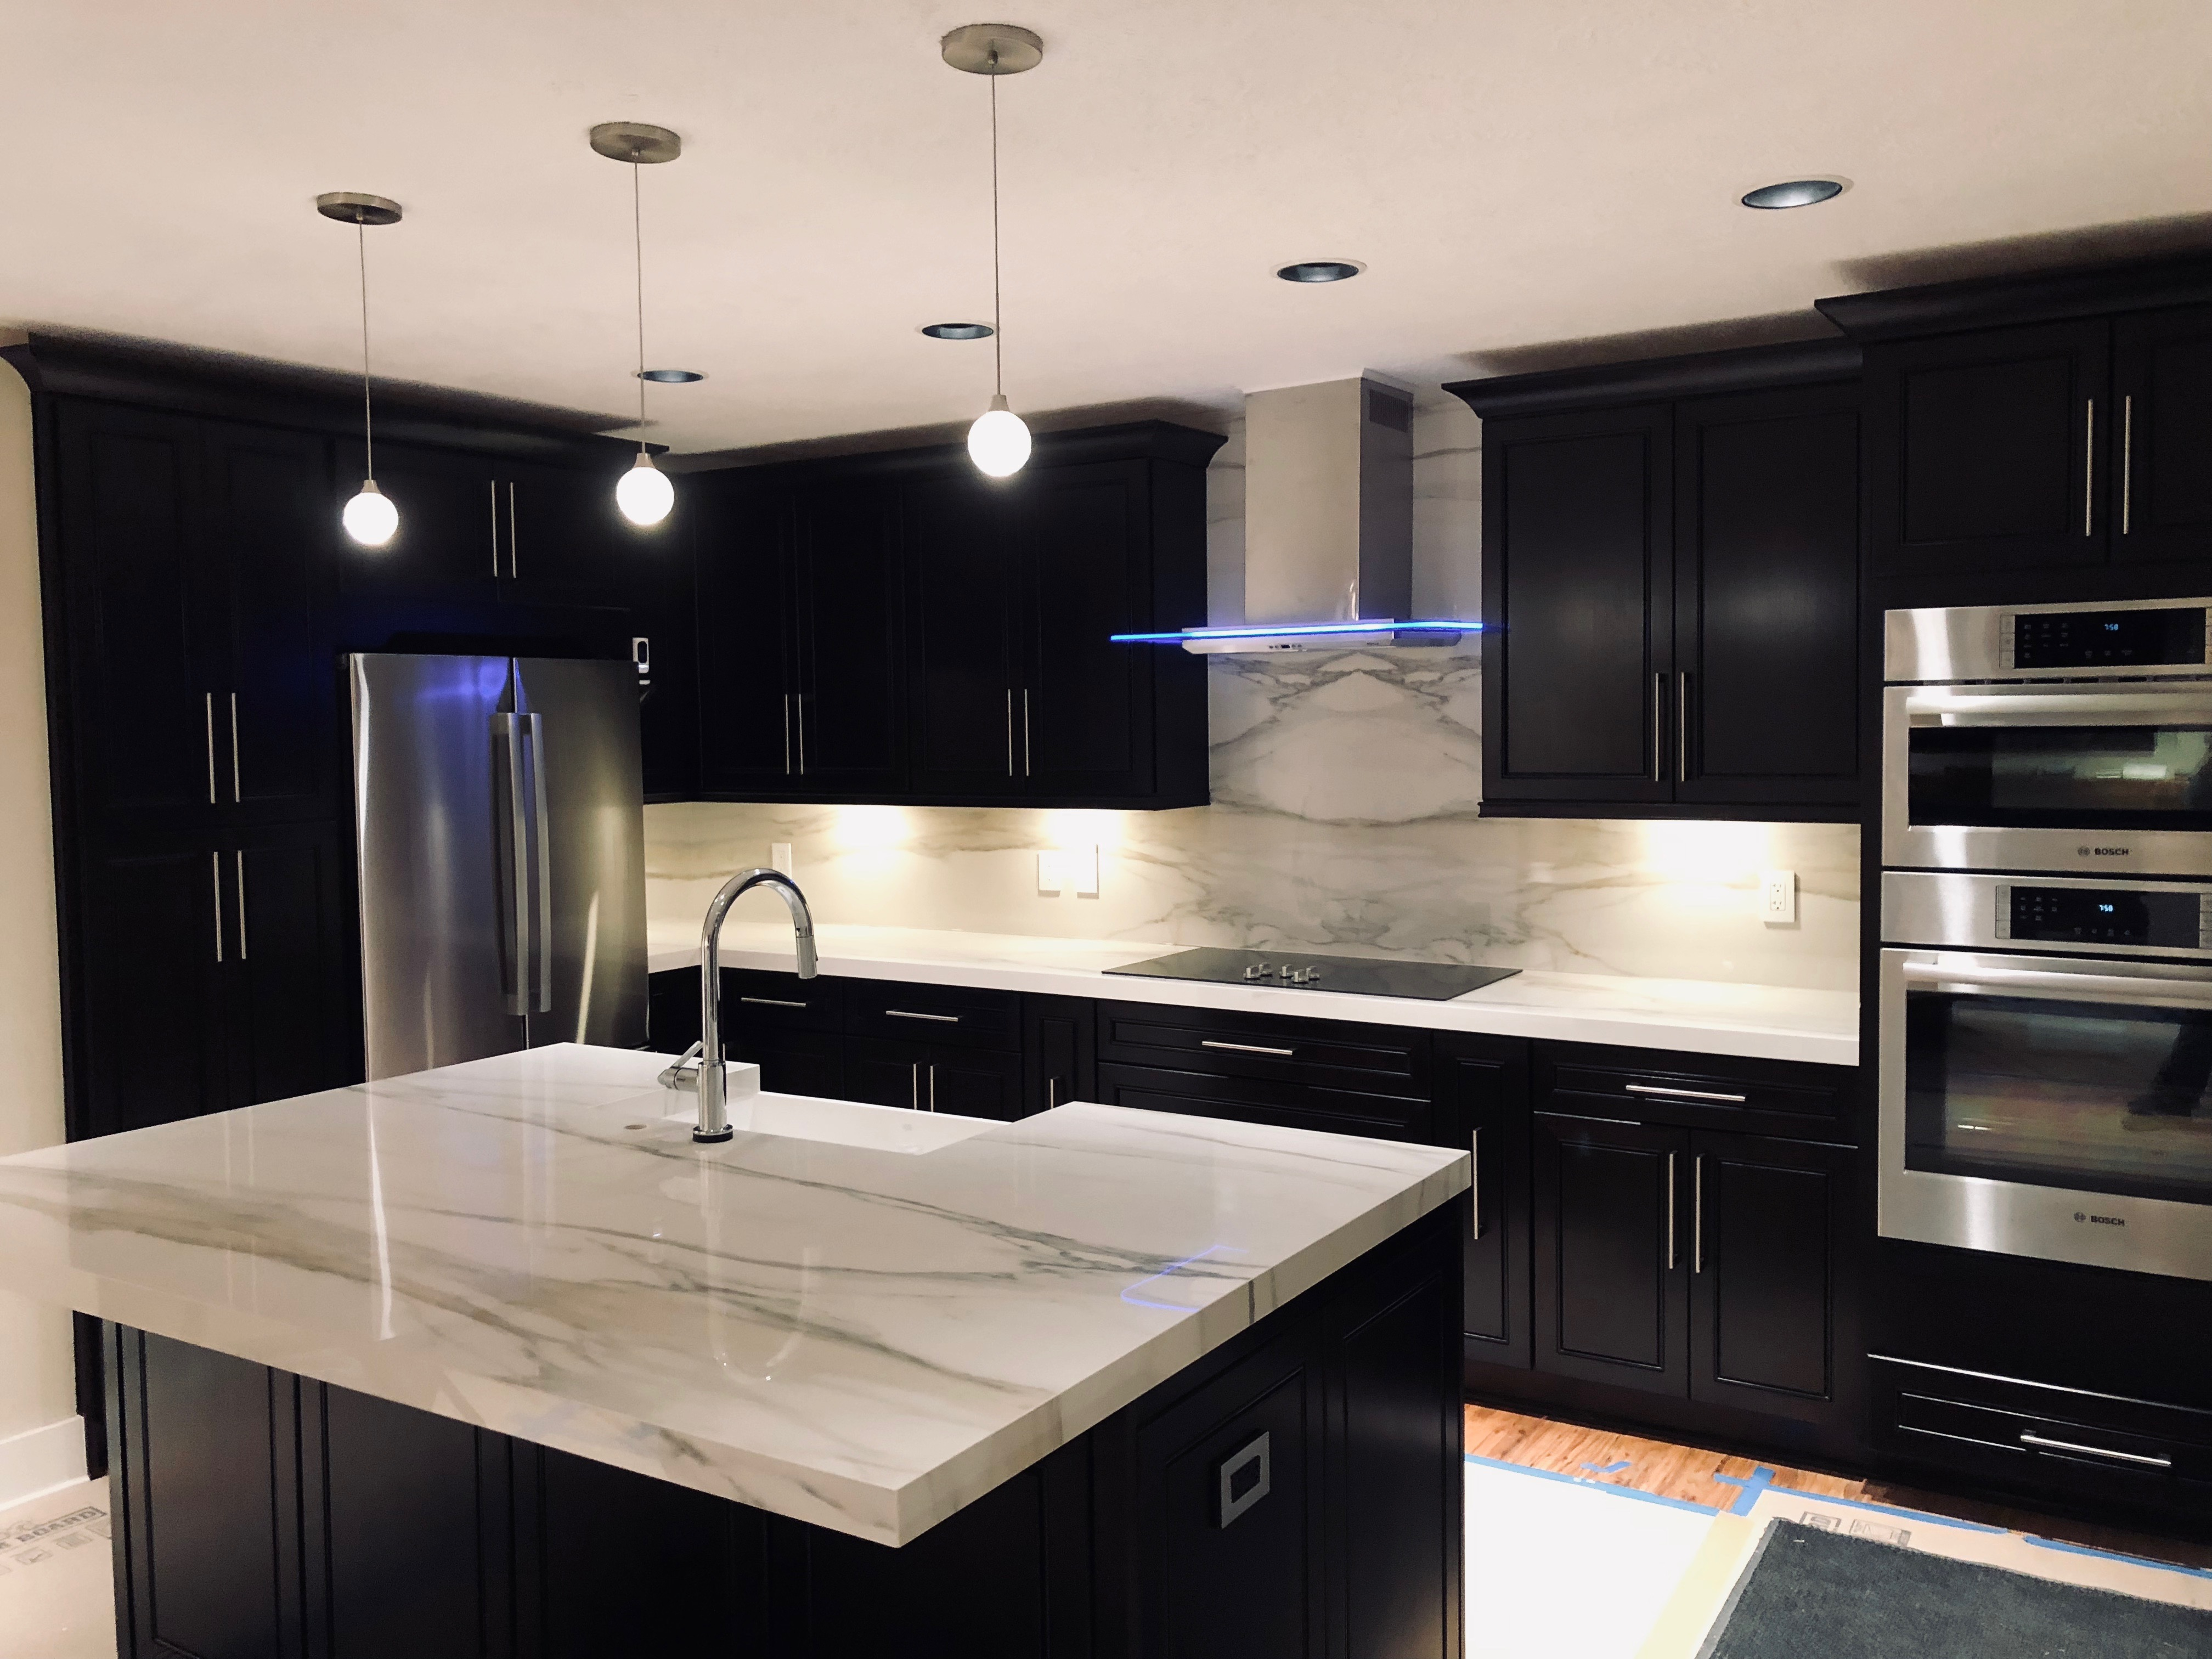 Top 10 Designs for Your New Custom Home